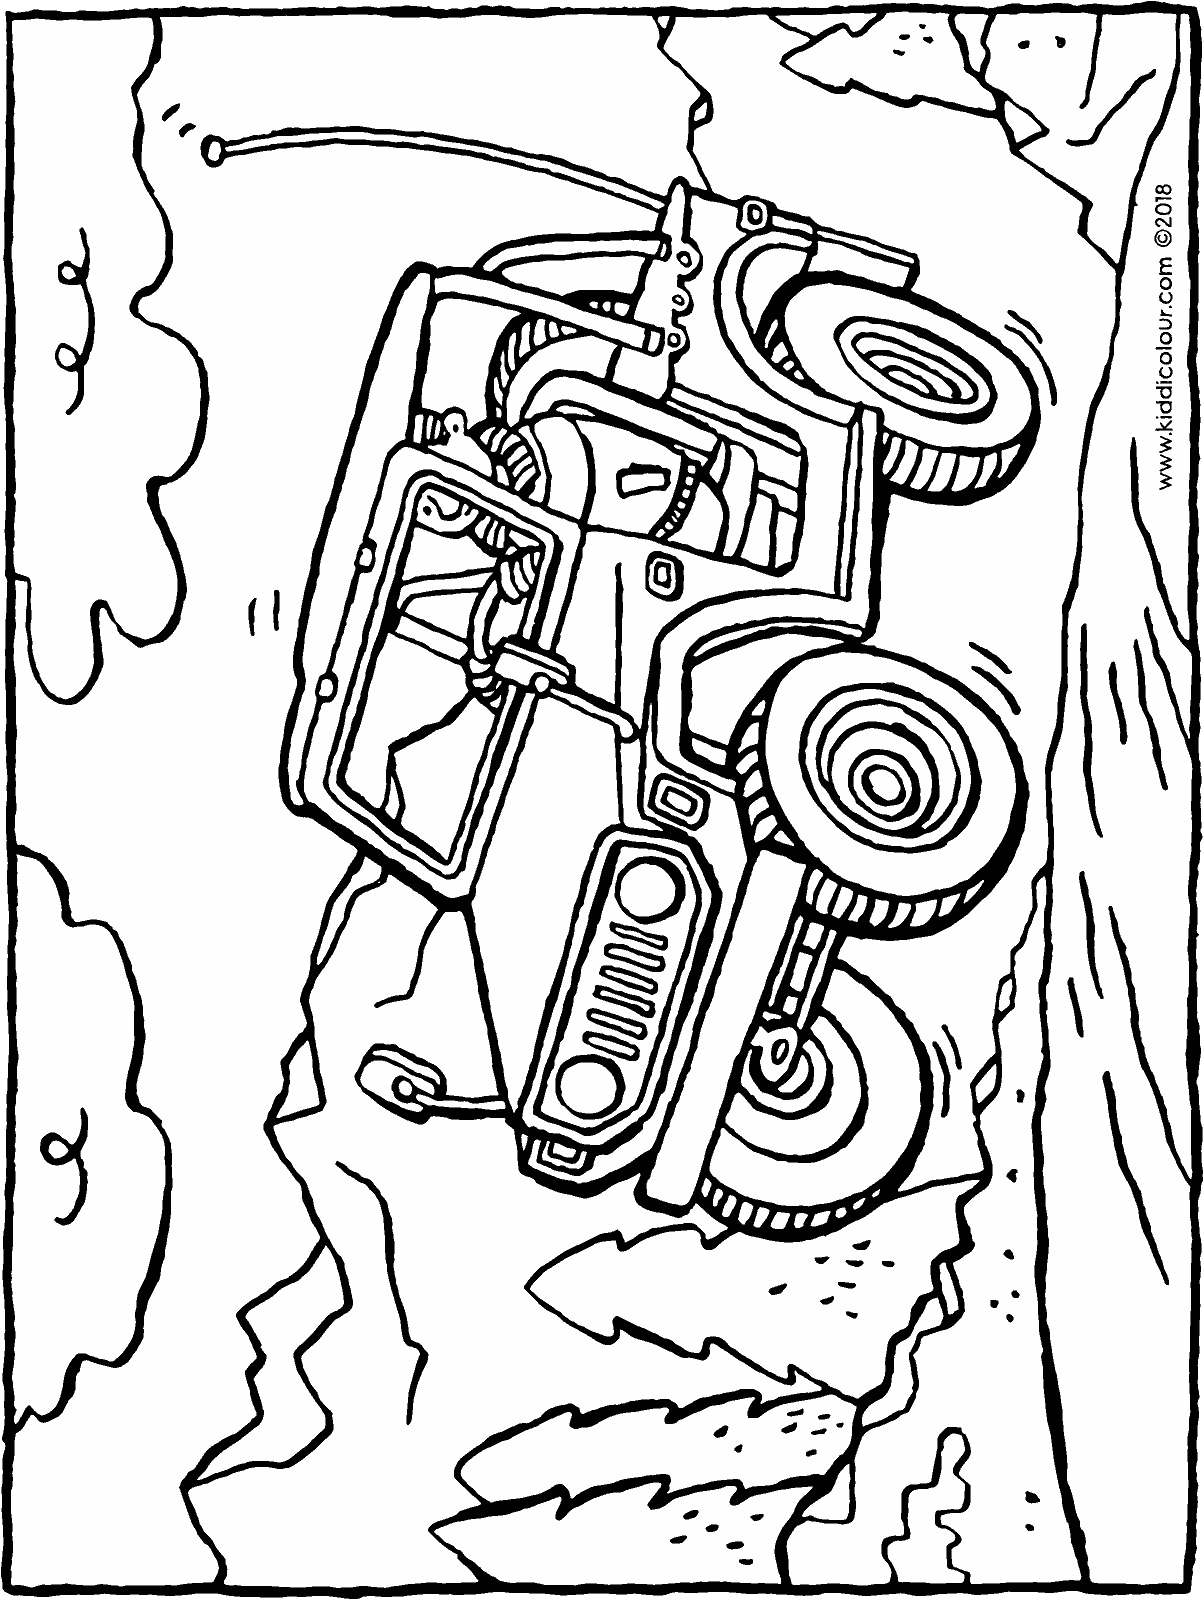 jeep colouring page drawing picture 01H